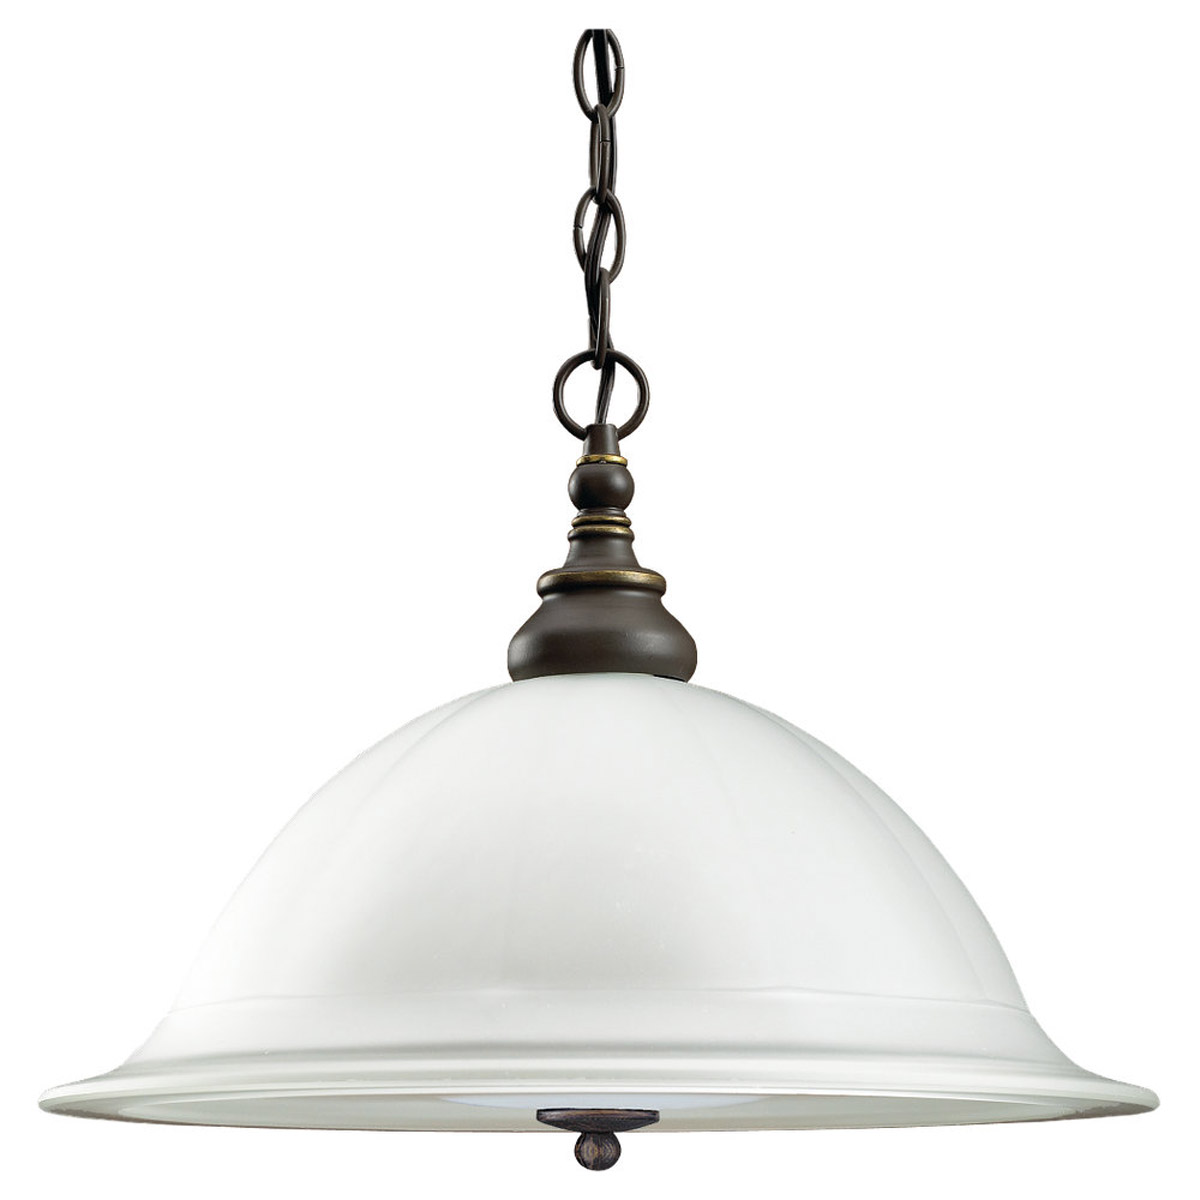 Sea Gull Lighting Canterbury 1 Light Fluorescent Pendant in Antique Bronze 69250BLE-71 photo